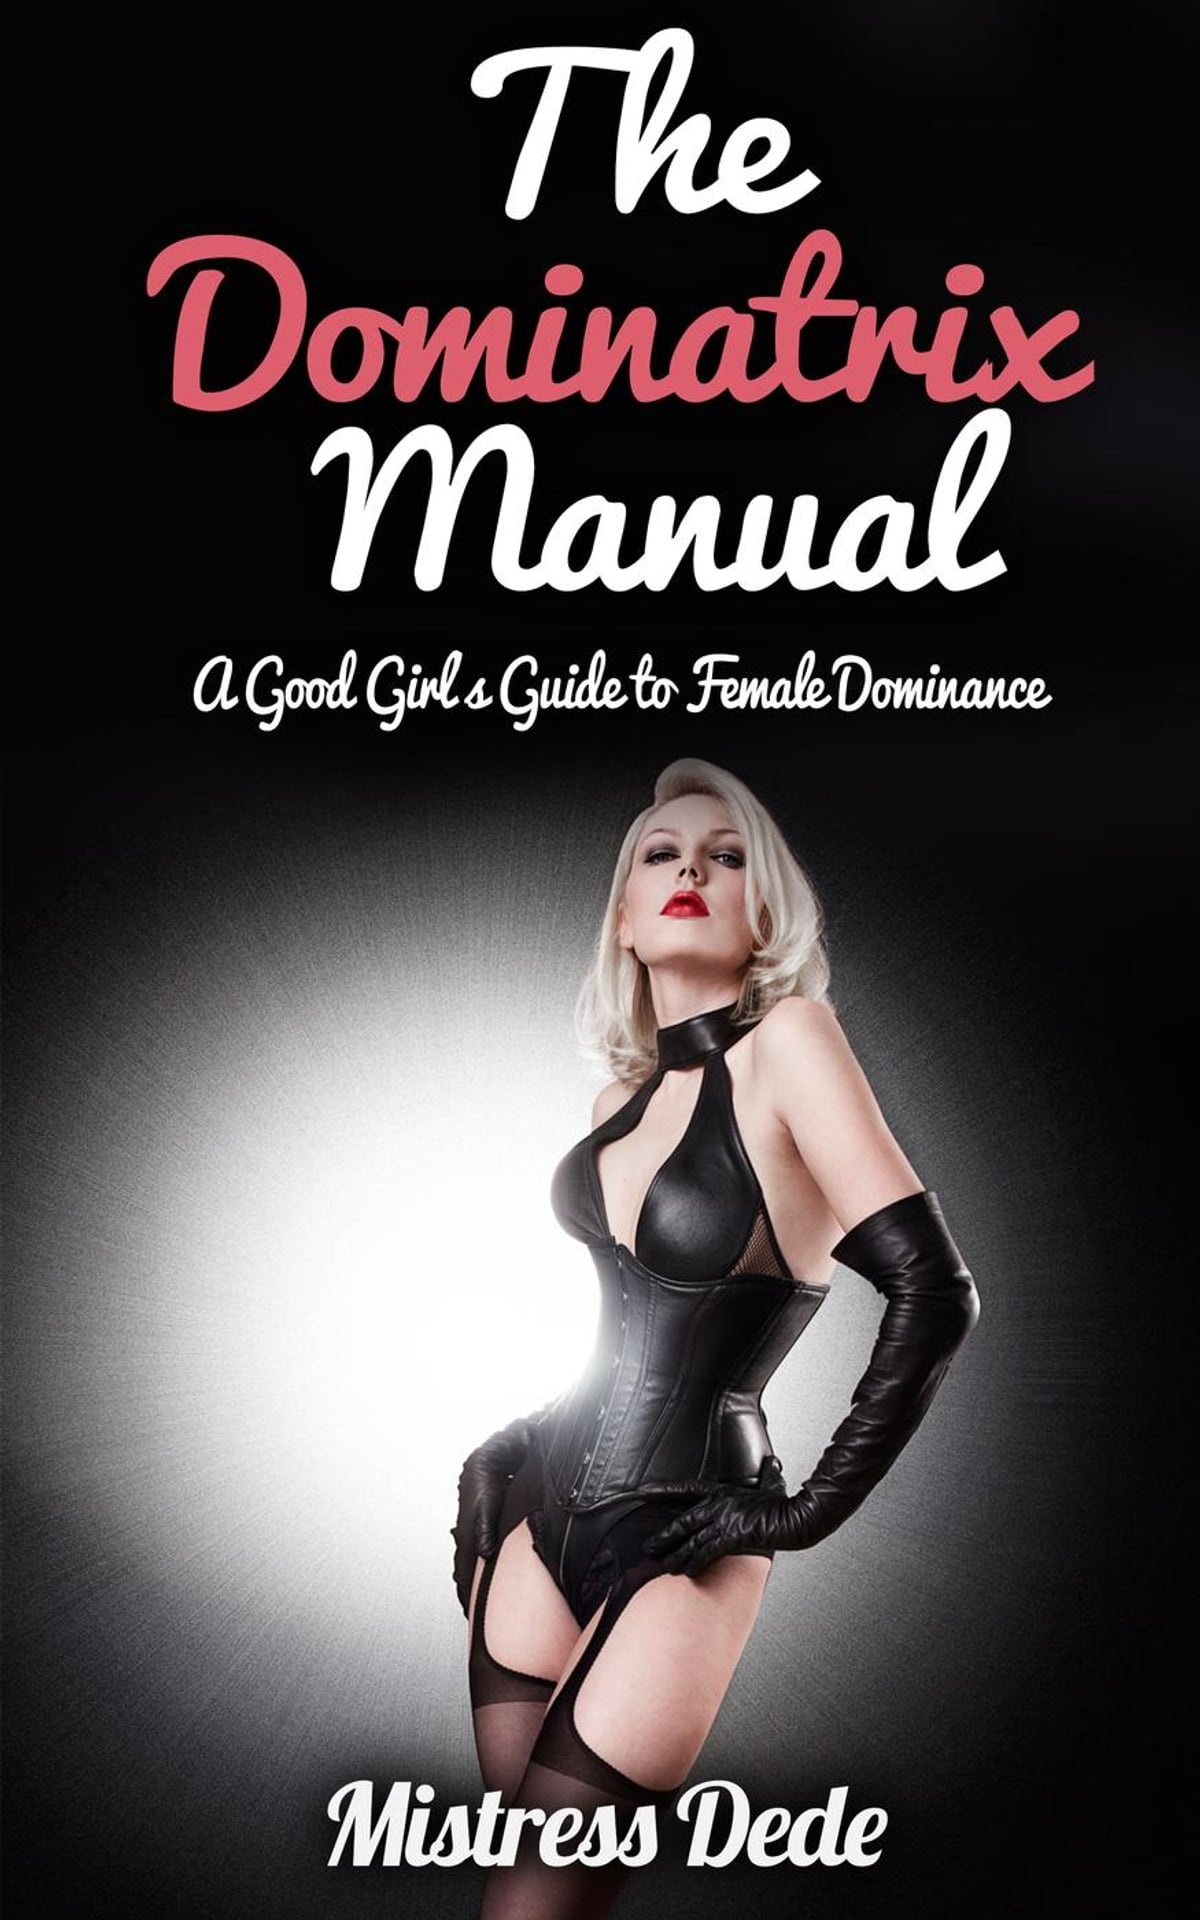 The good girls guide to female domination, saxy of china girl with boy